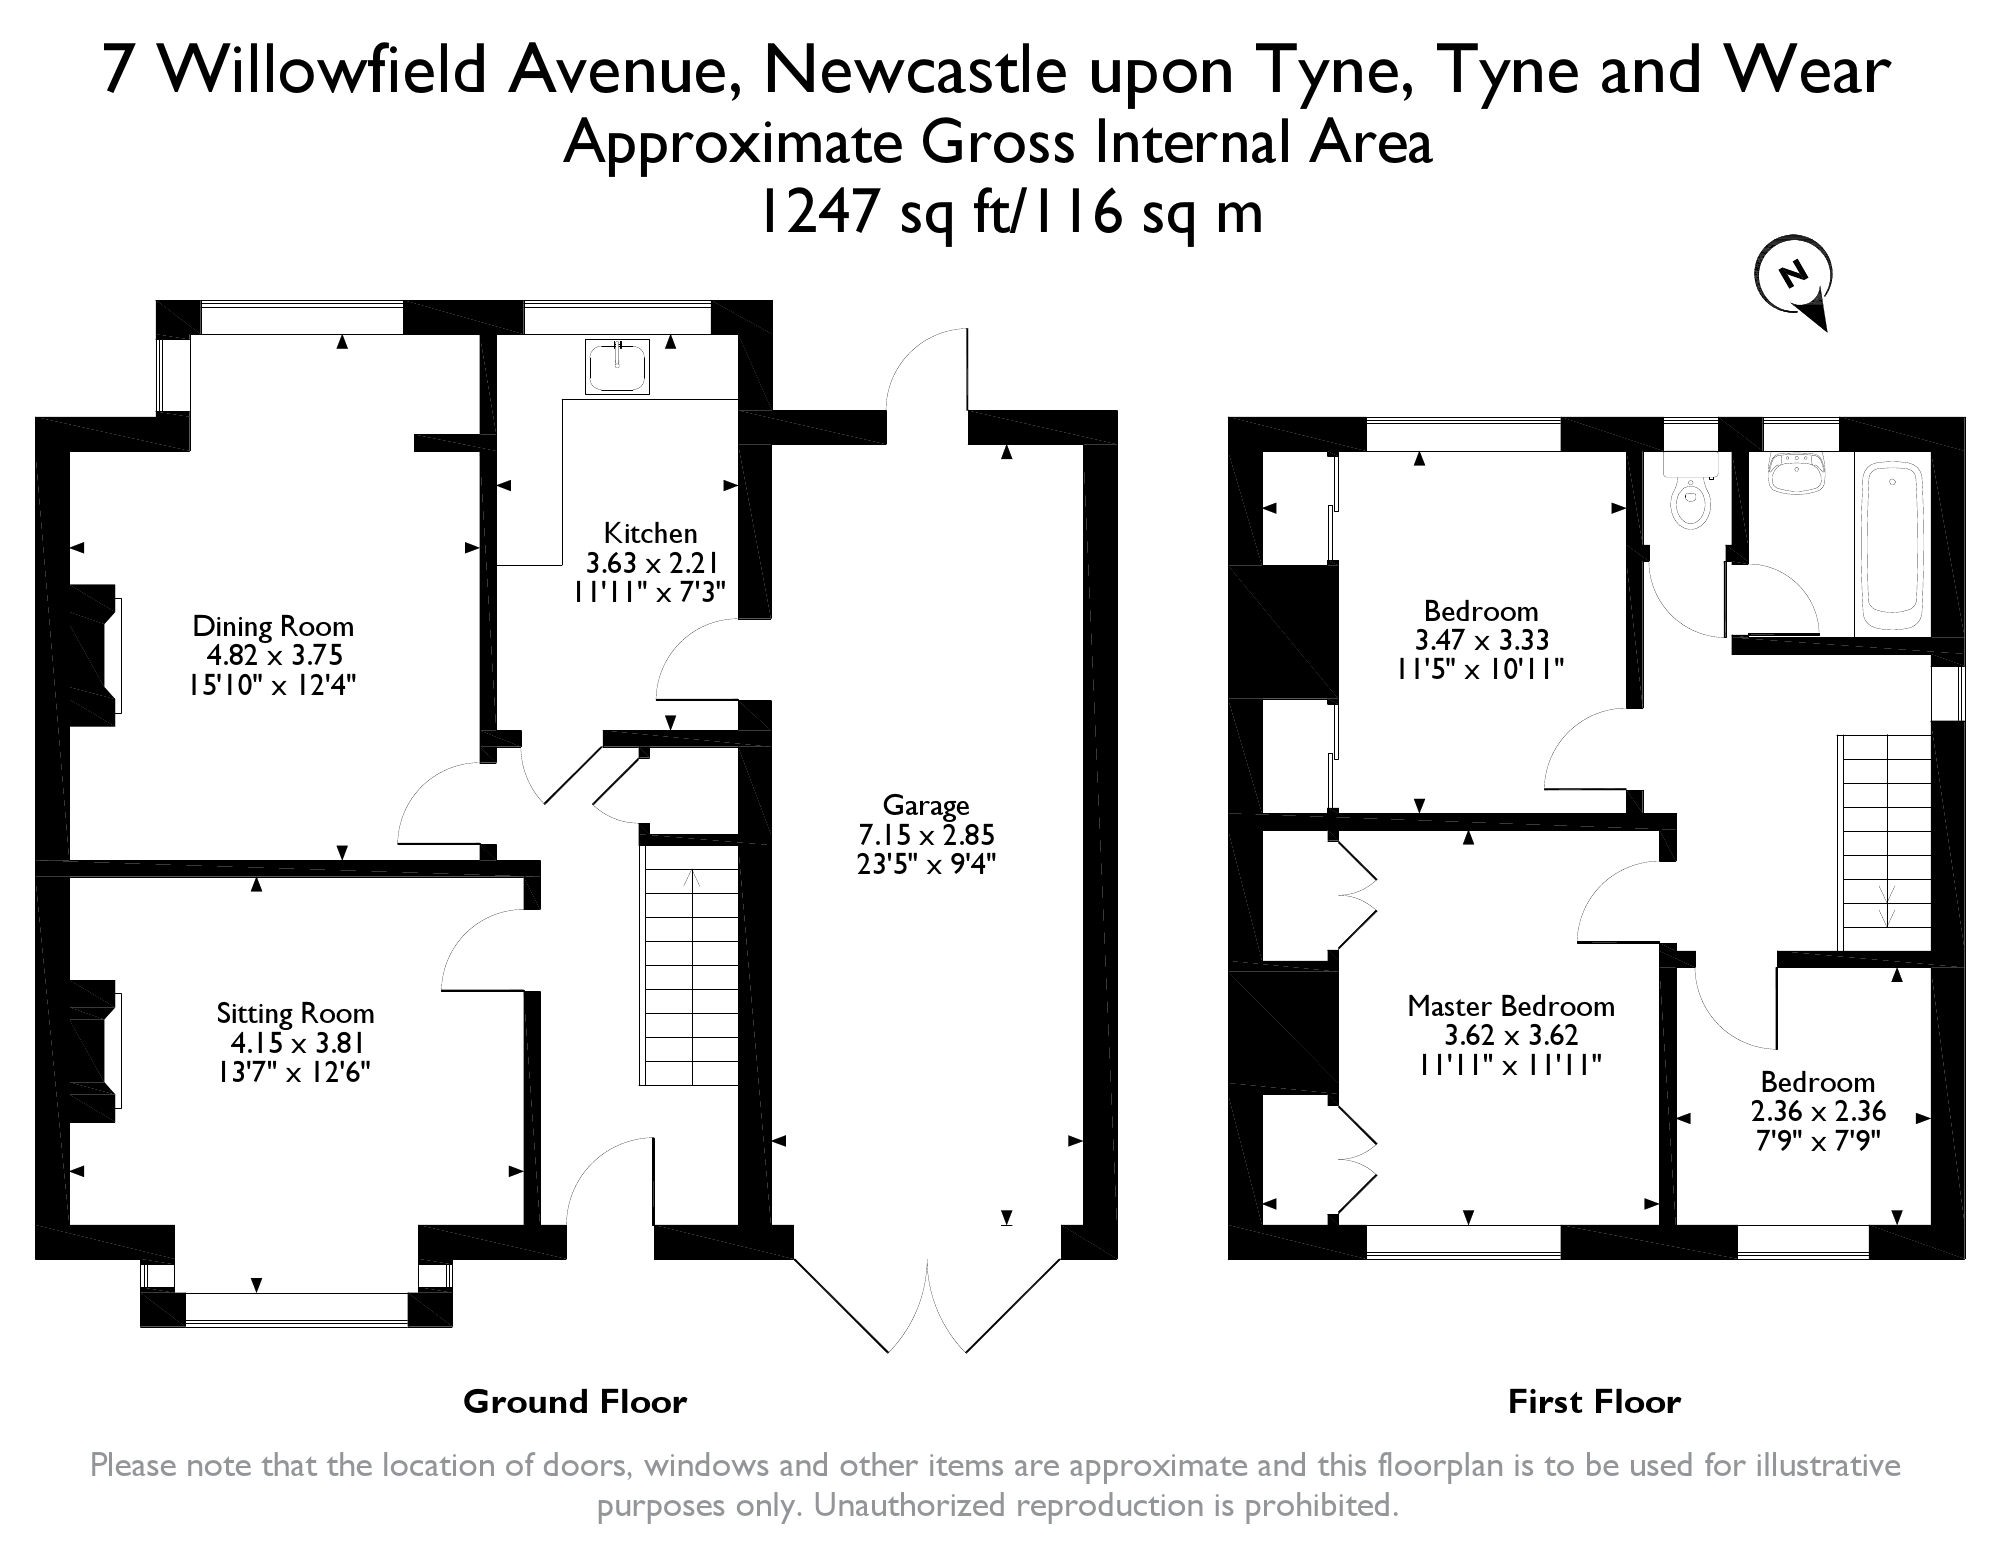 Floorplans for Willowfield Avenue, Fawdon, Newcastle Upon Tyne, NE3